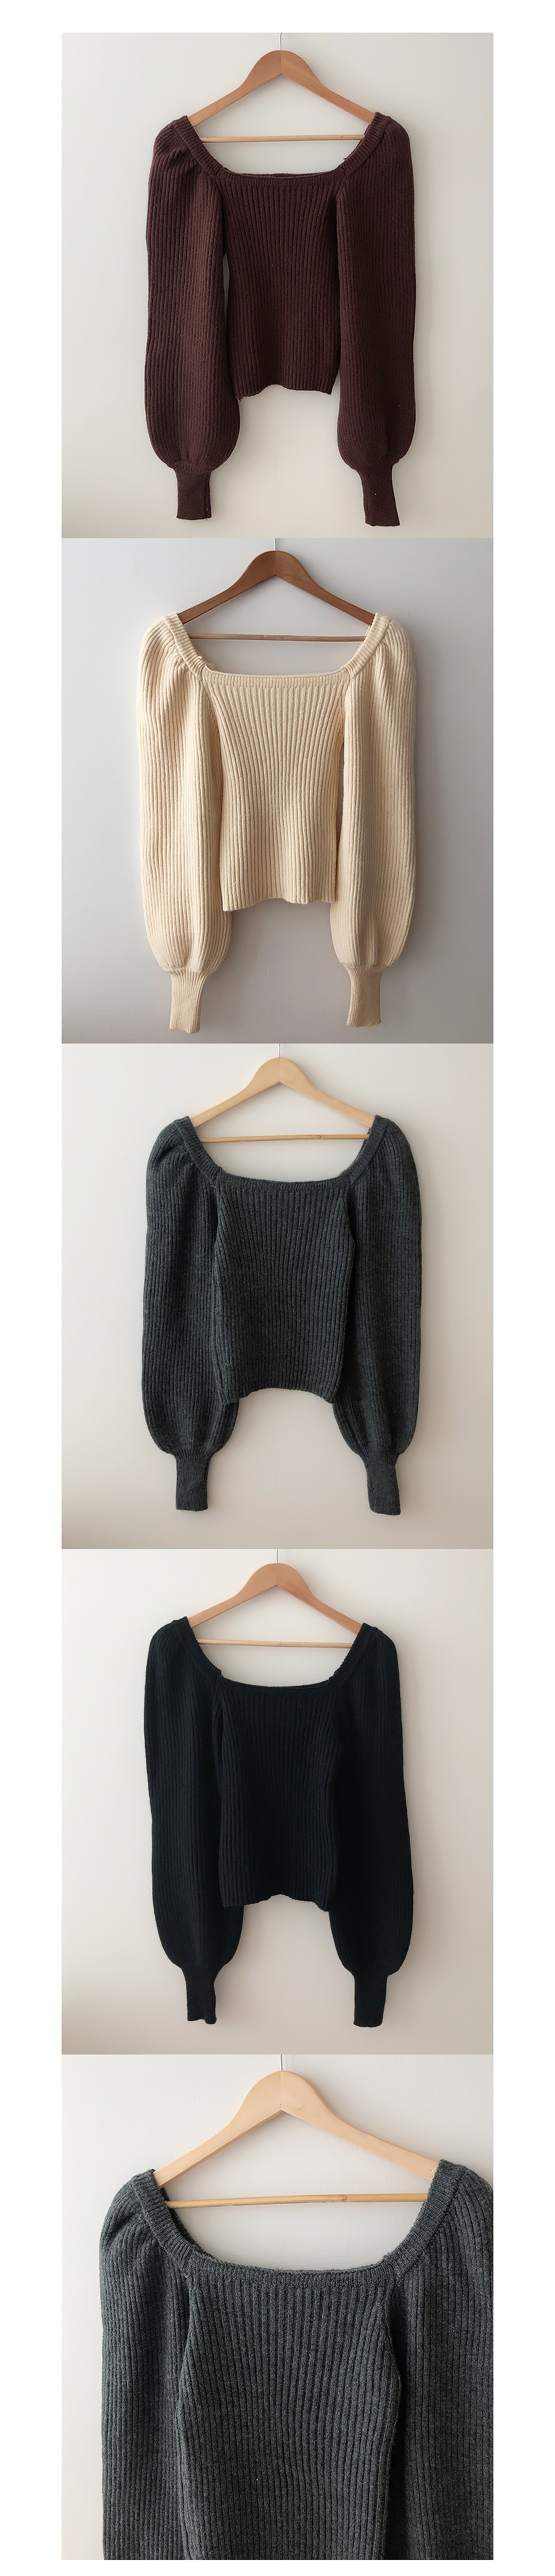 Glam Ribbed Puff Knitwear 4color